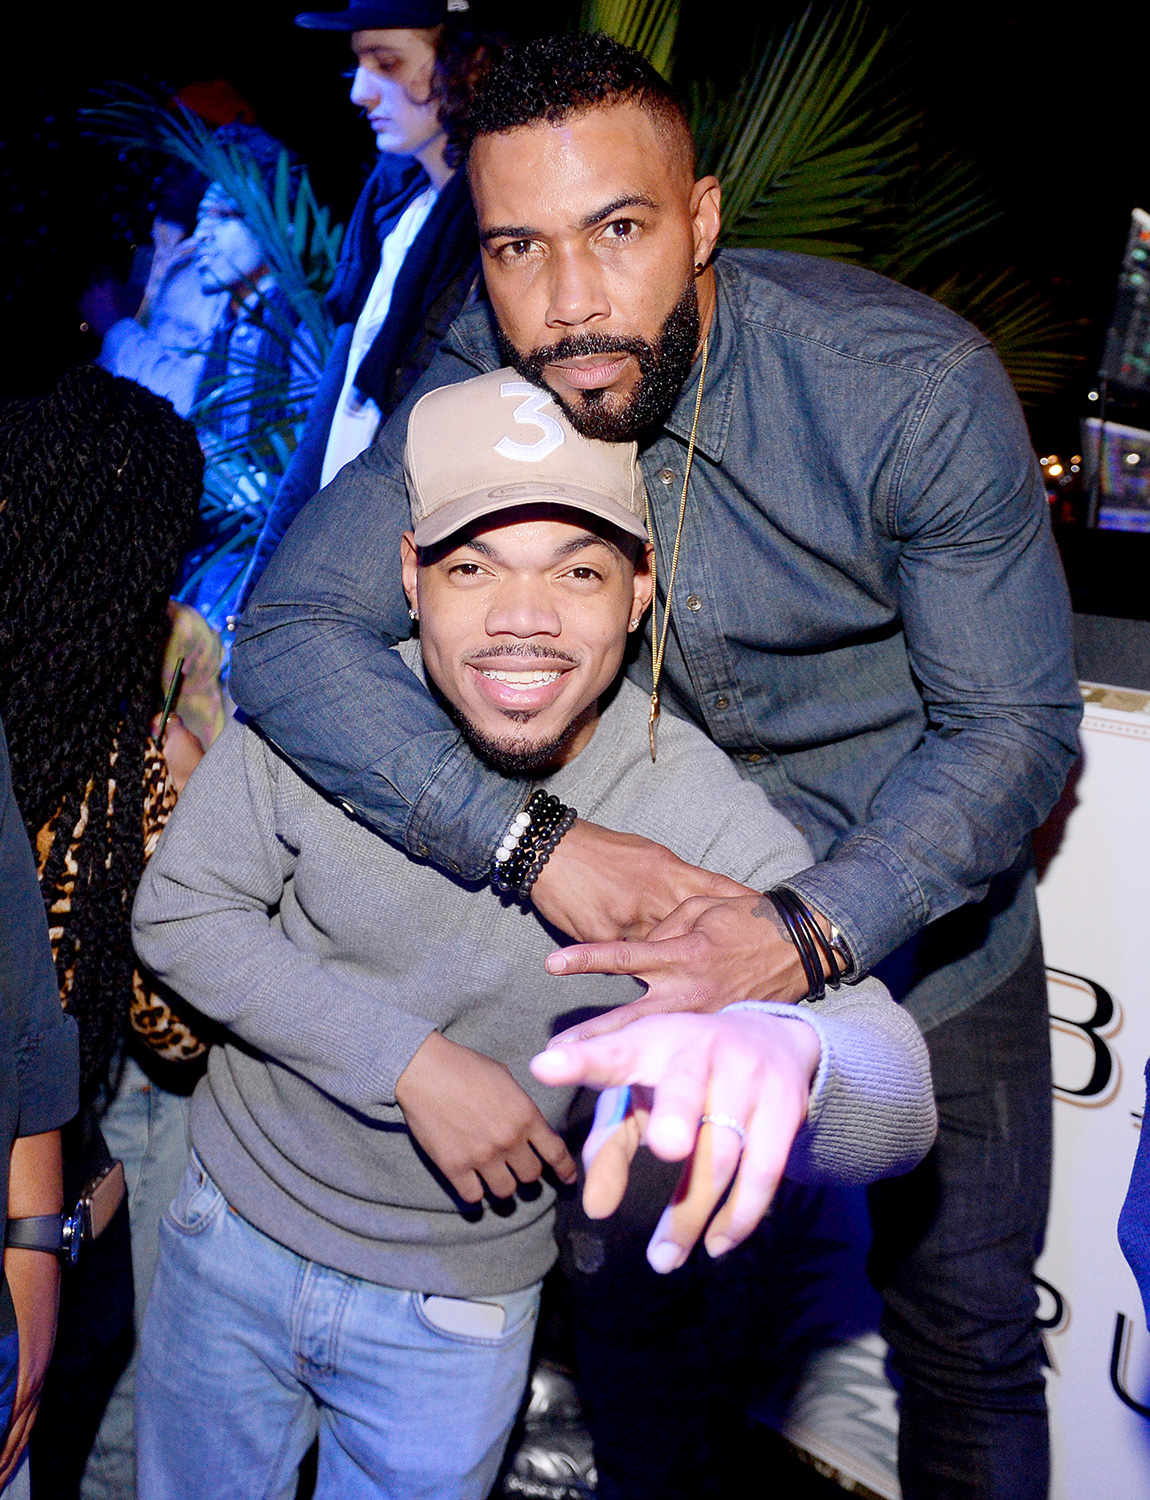 Chance the Rapper and Omari Hardwick hug at the BACARDI Rum Room in Chicago at Il Porcellino on February 13, 2020 in Chicago, Illinois